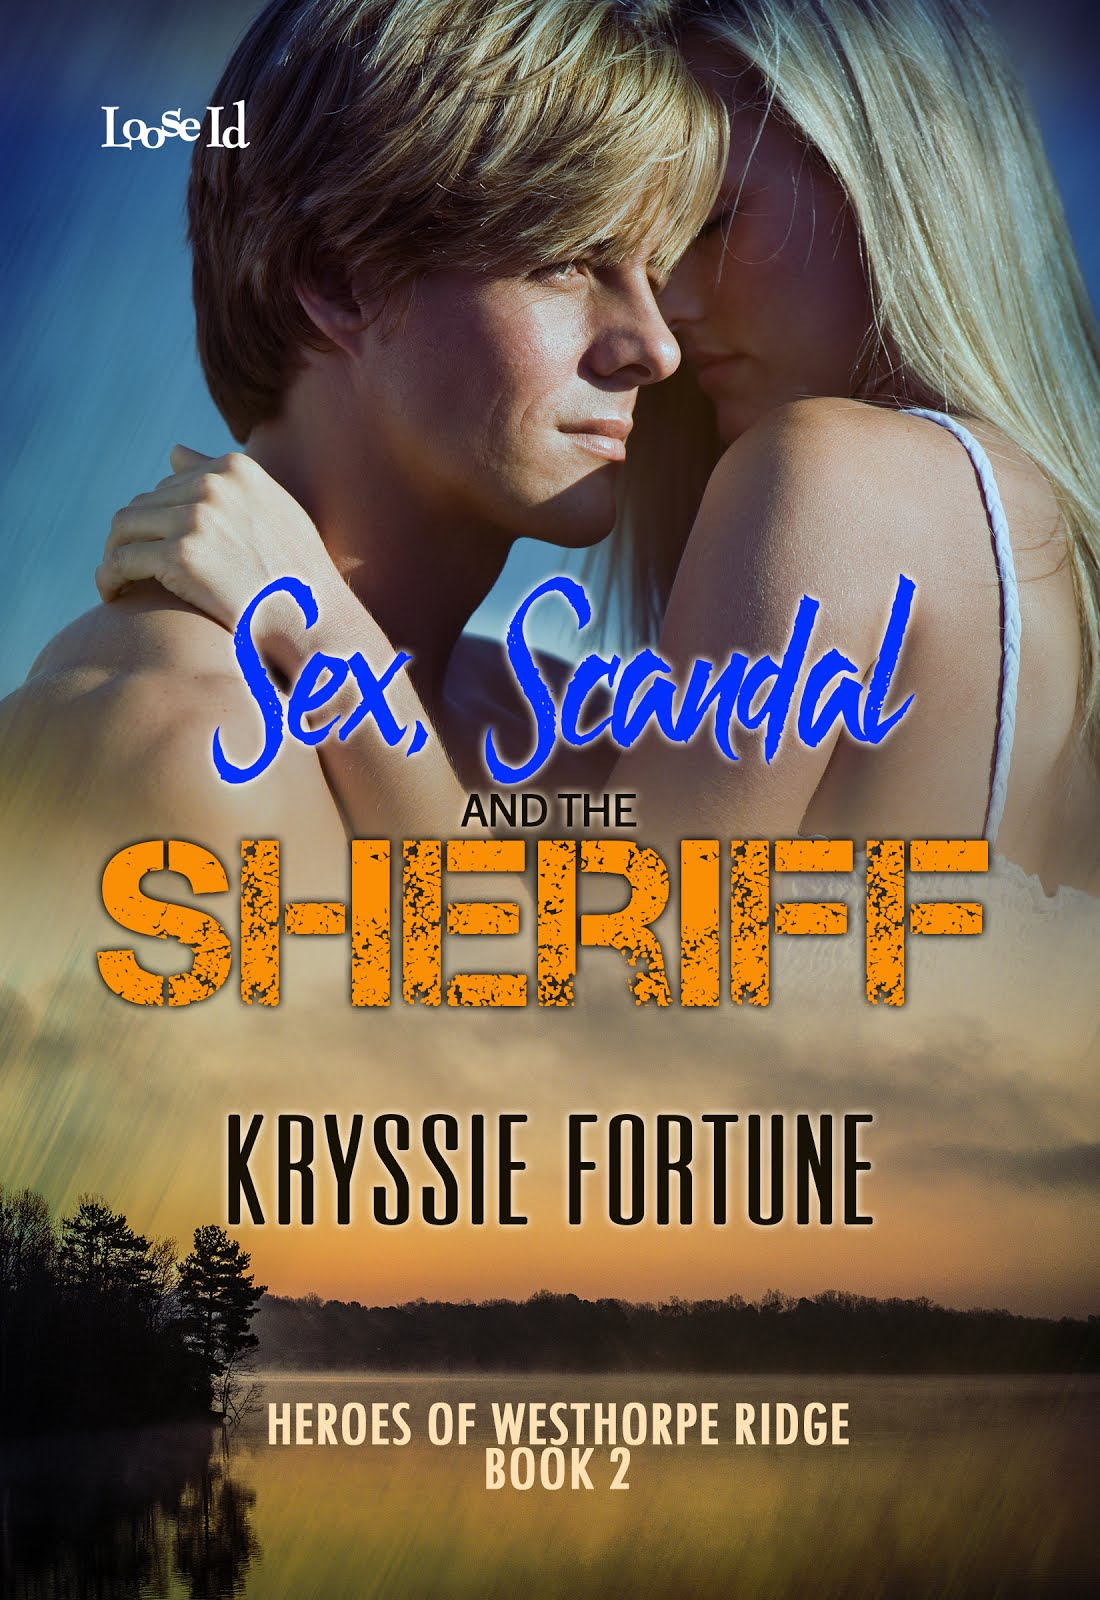 Sex, Scandal and the Sheriff